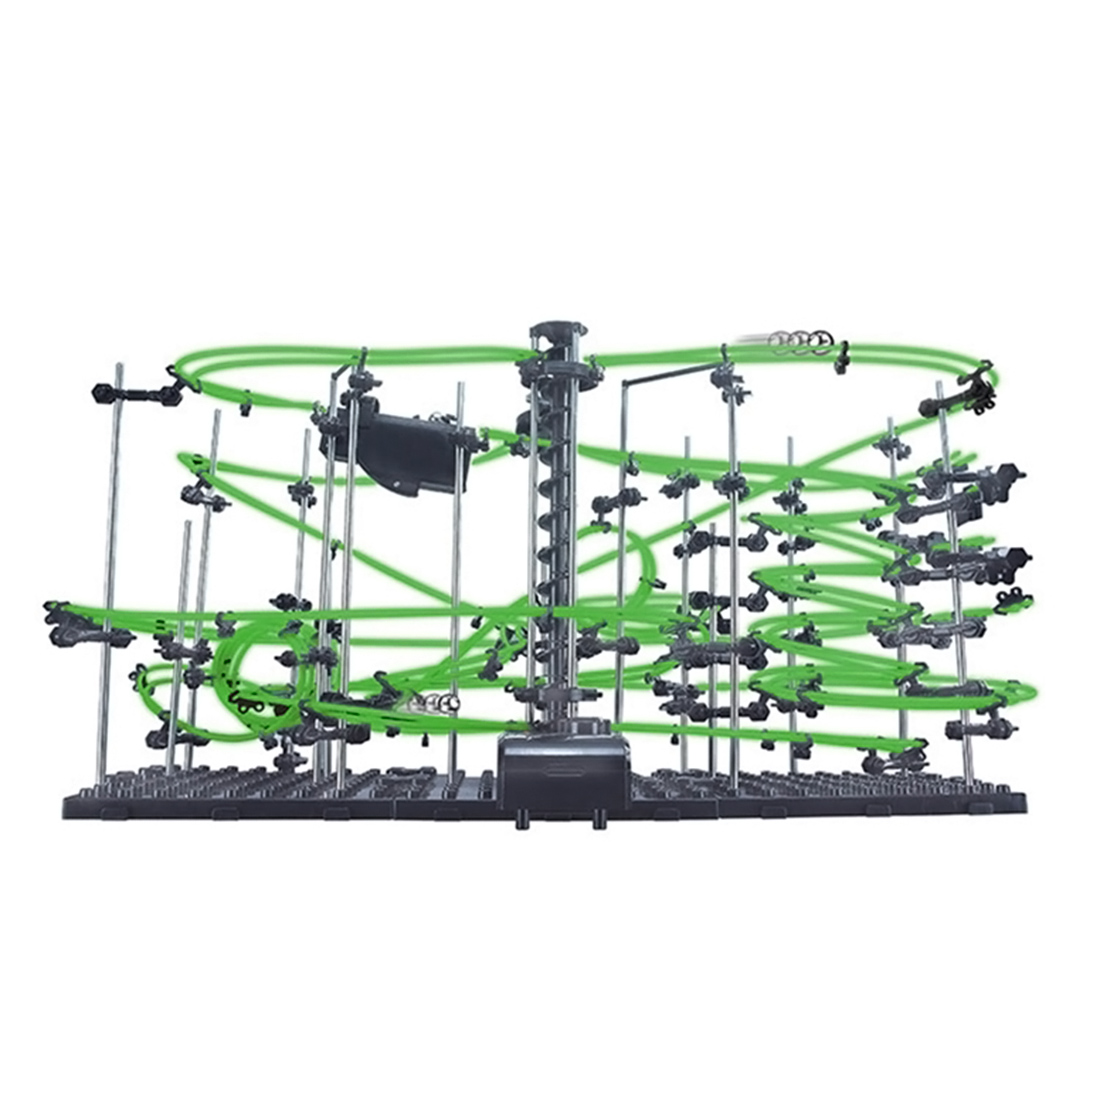 DIY Educational Toys Space Rail Level 2 3 4 Steel Marble Roller Coaster Glow In The Dark Spacerail For Kids Toys Christmas Gift